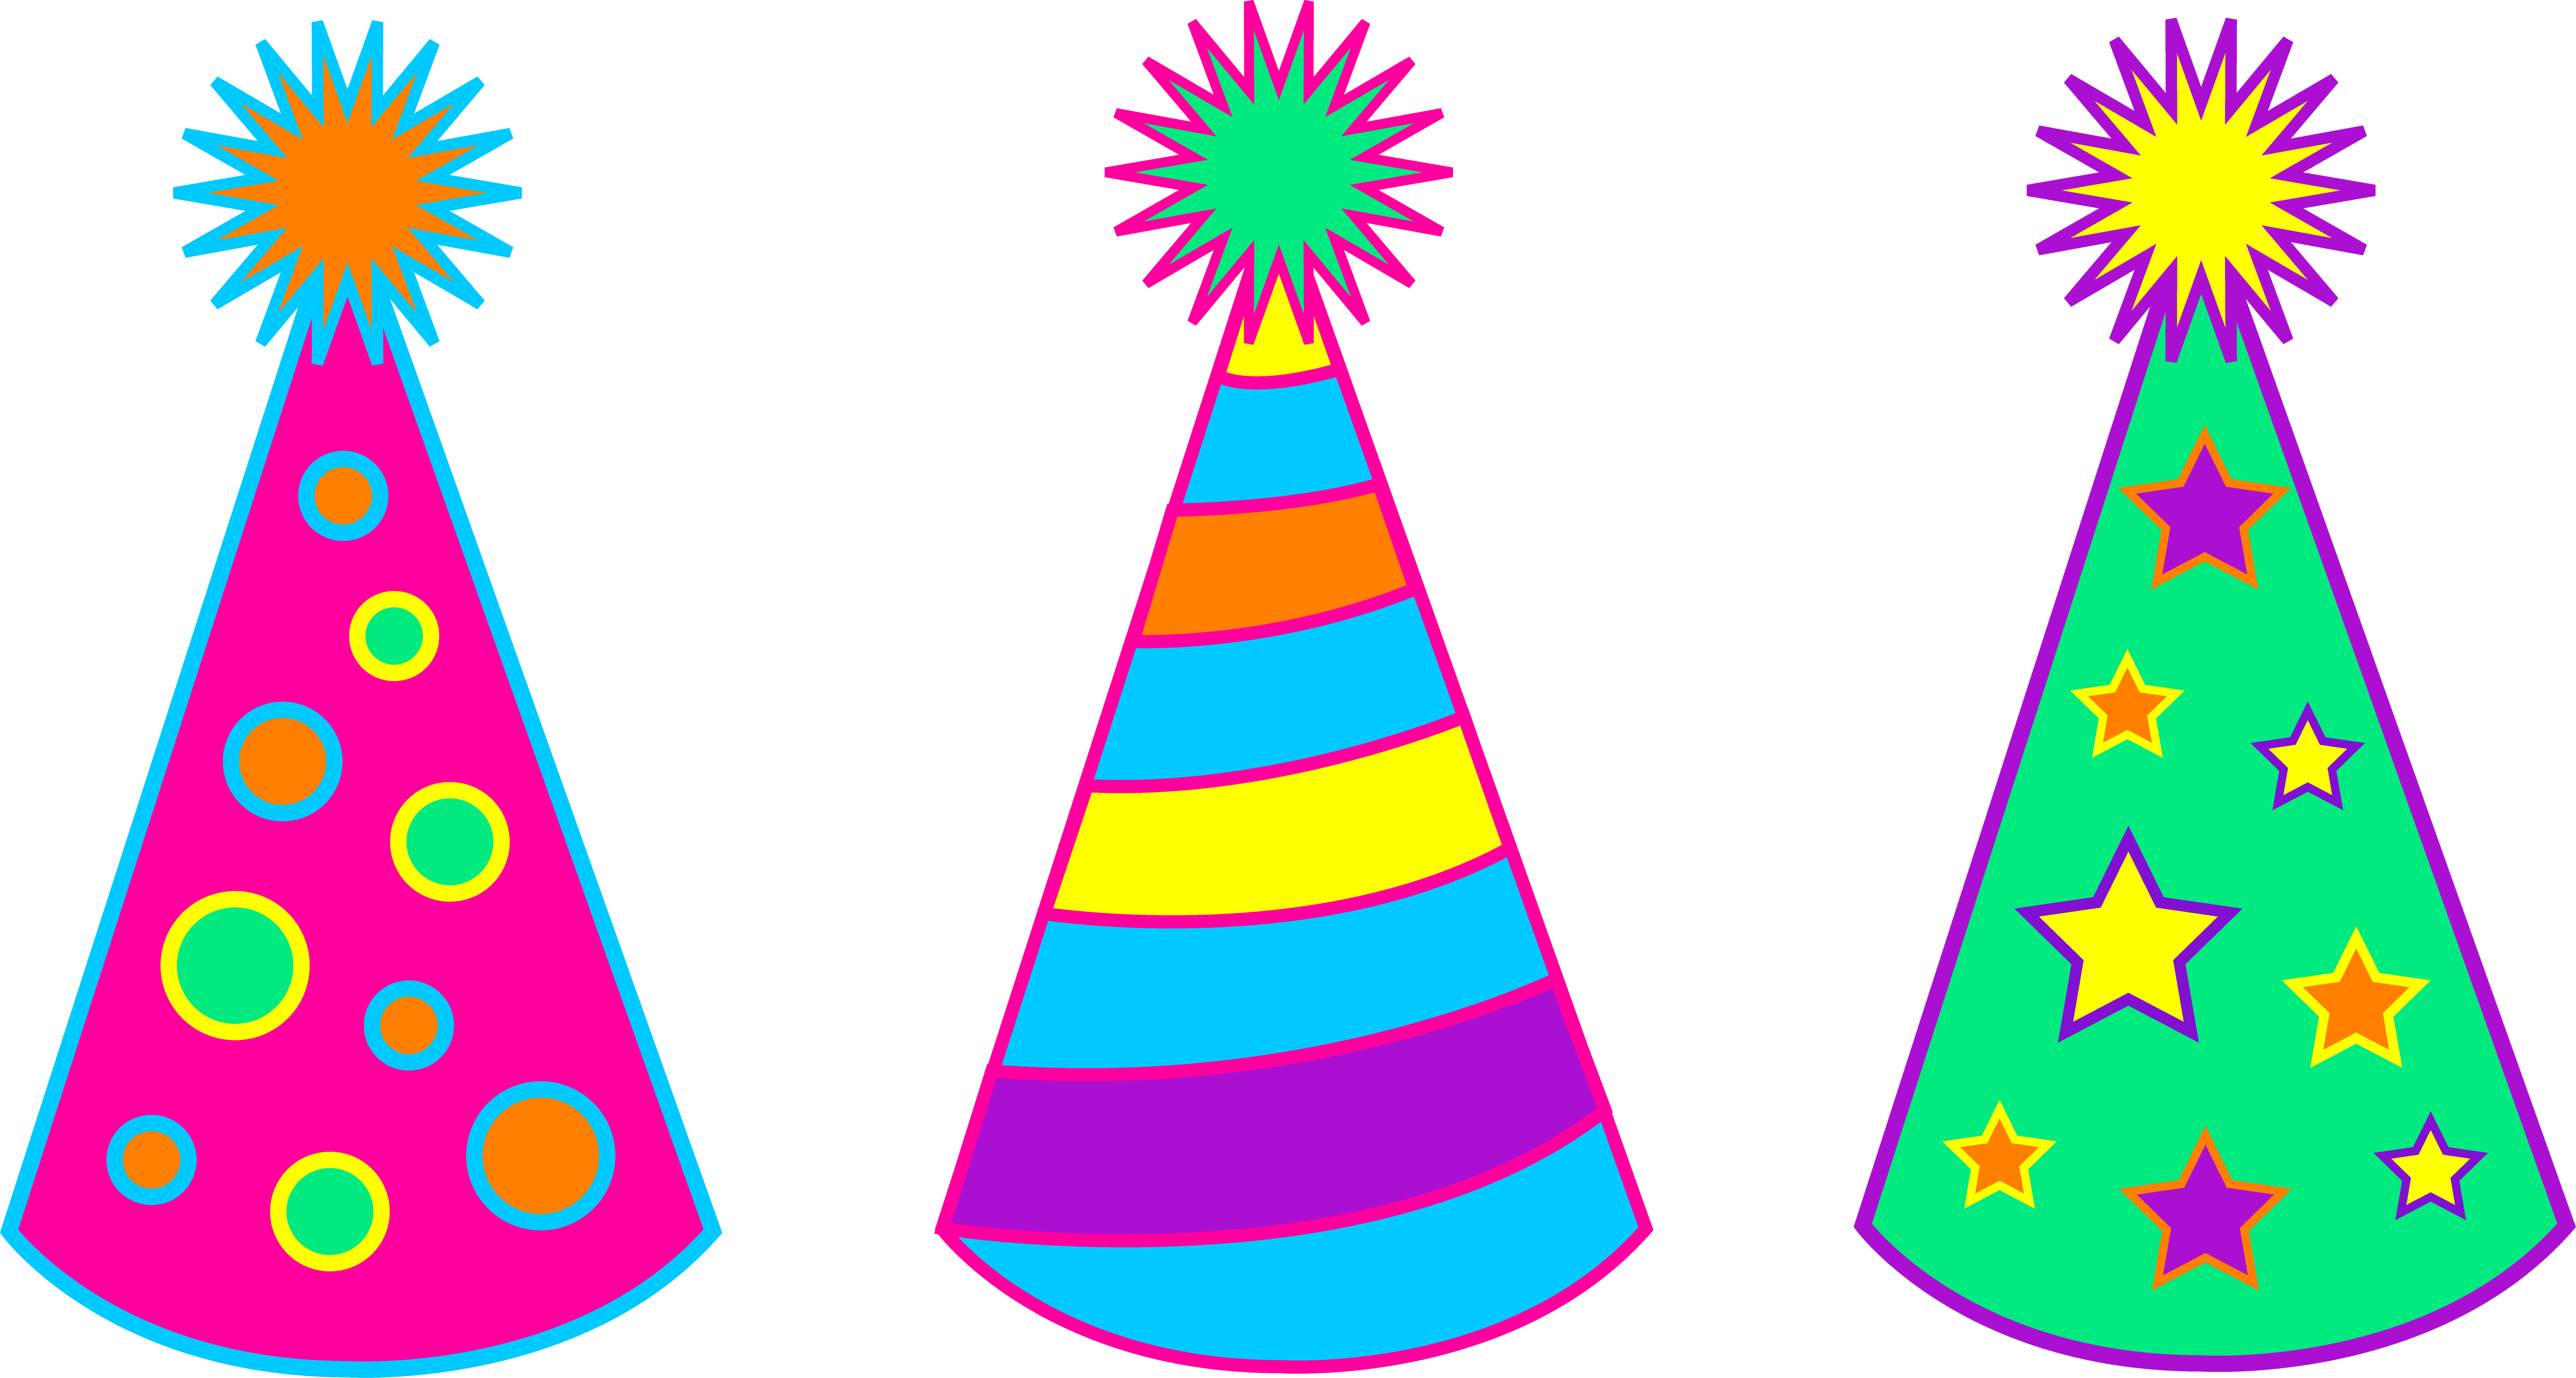 Party hat clipart pastel color svg black and white stock Party hat clipart - ClipartFest svg black and white stock